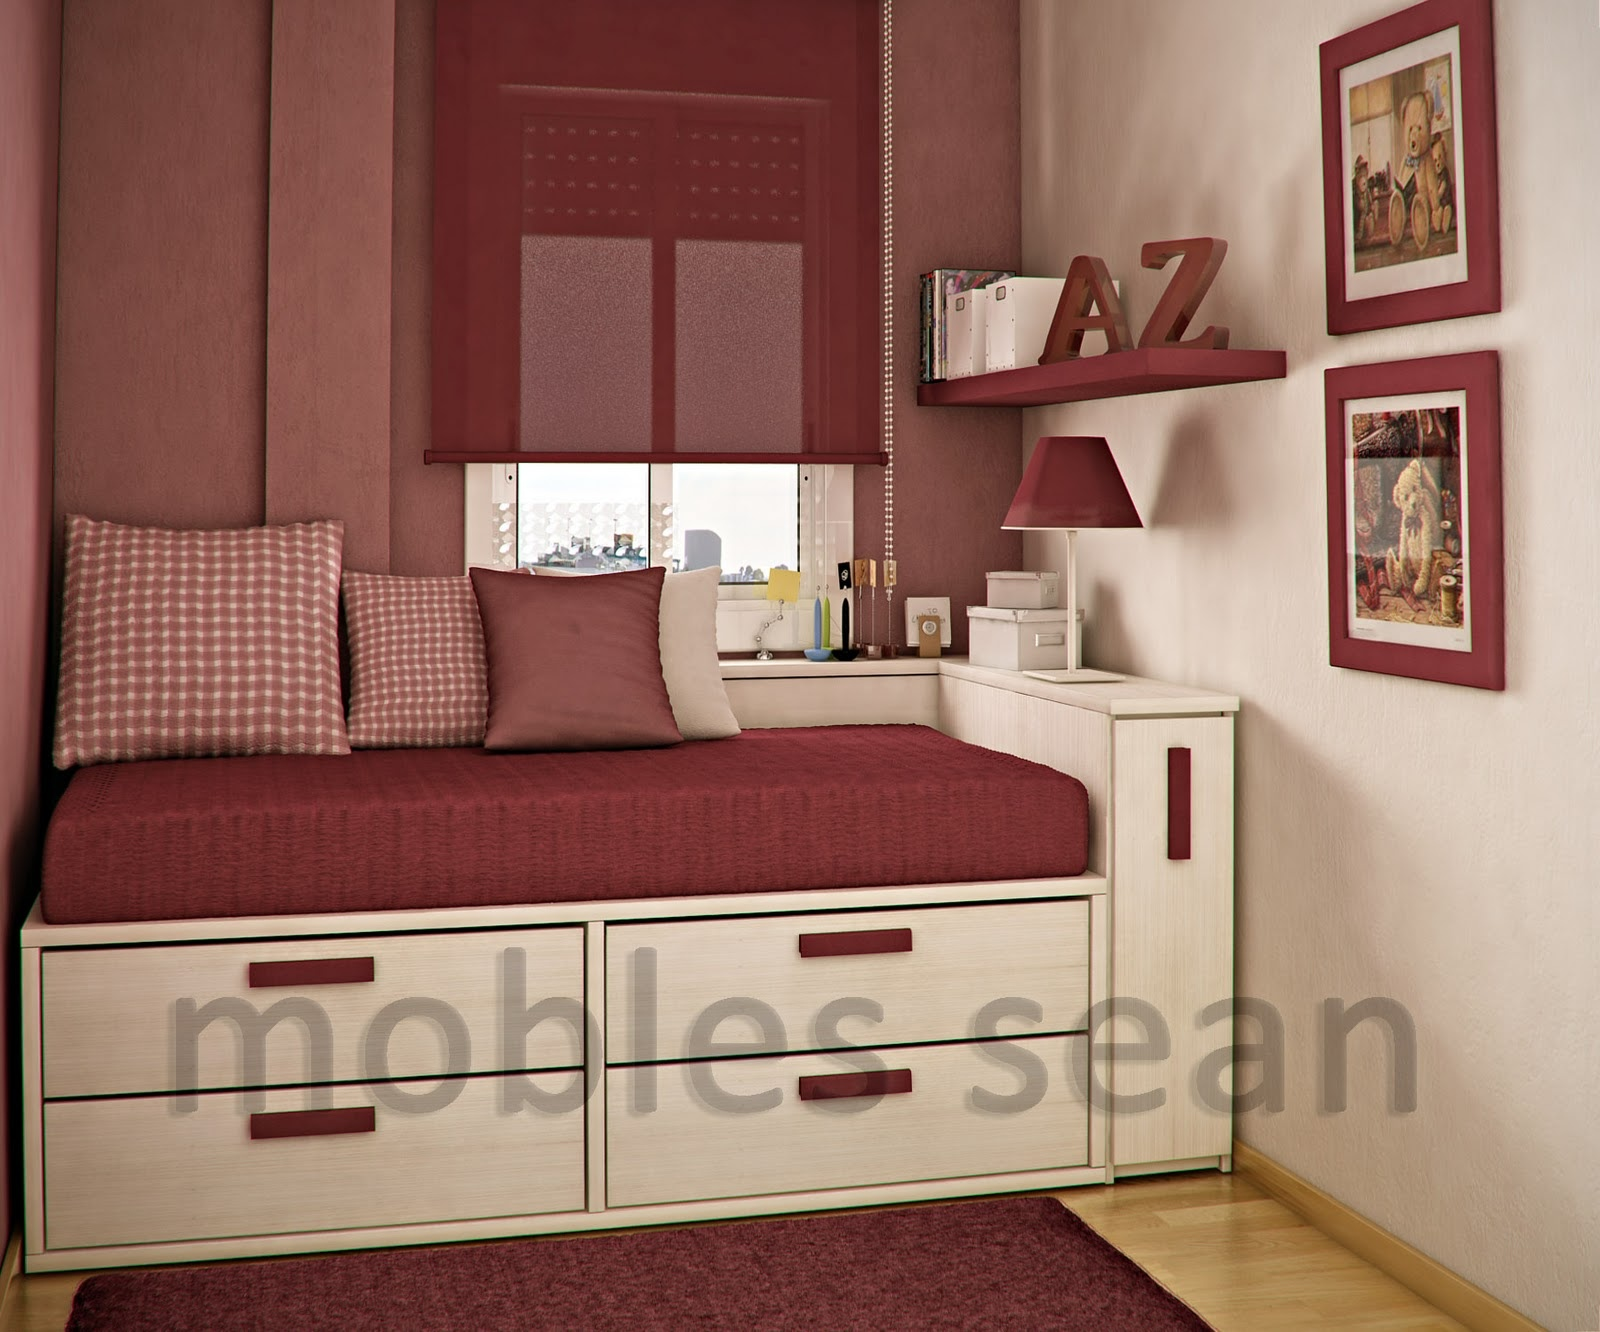 12 small space bedroom stunning bedroom ideas small spaces